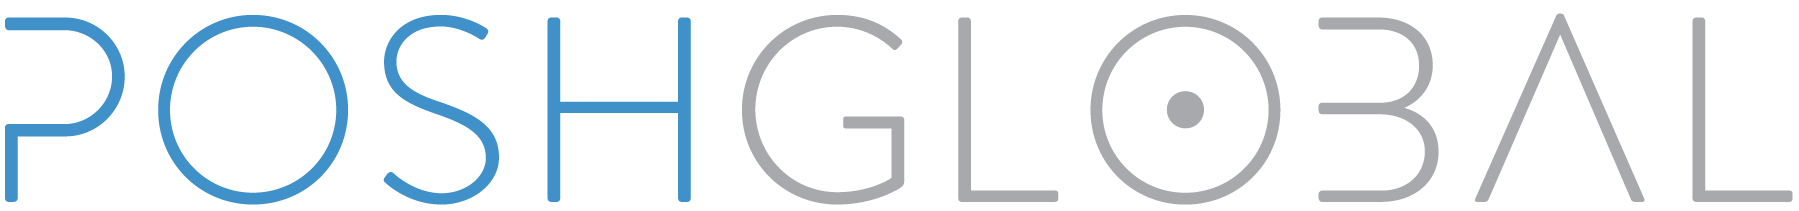 posh_global_logo.png